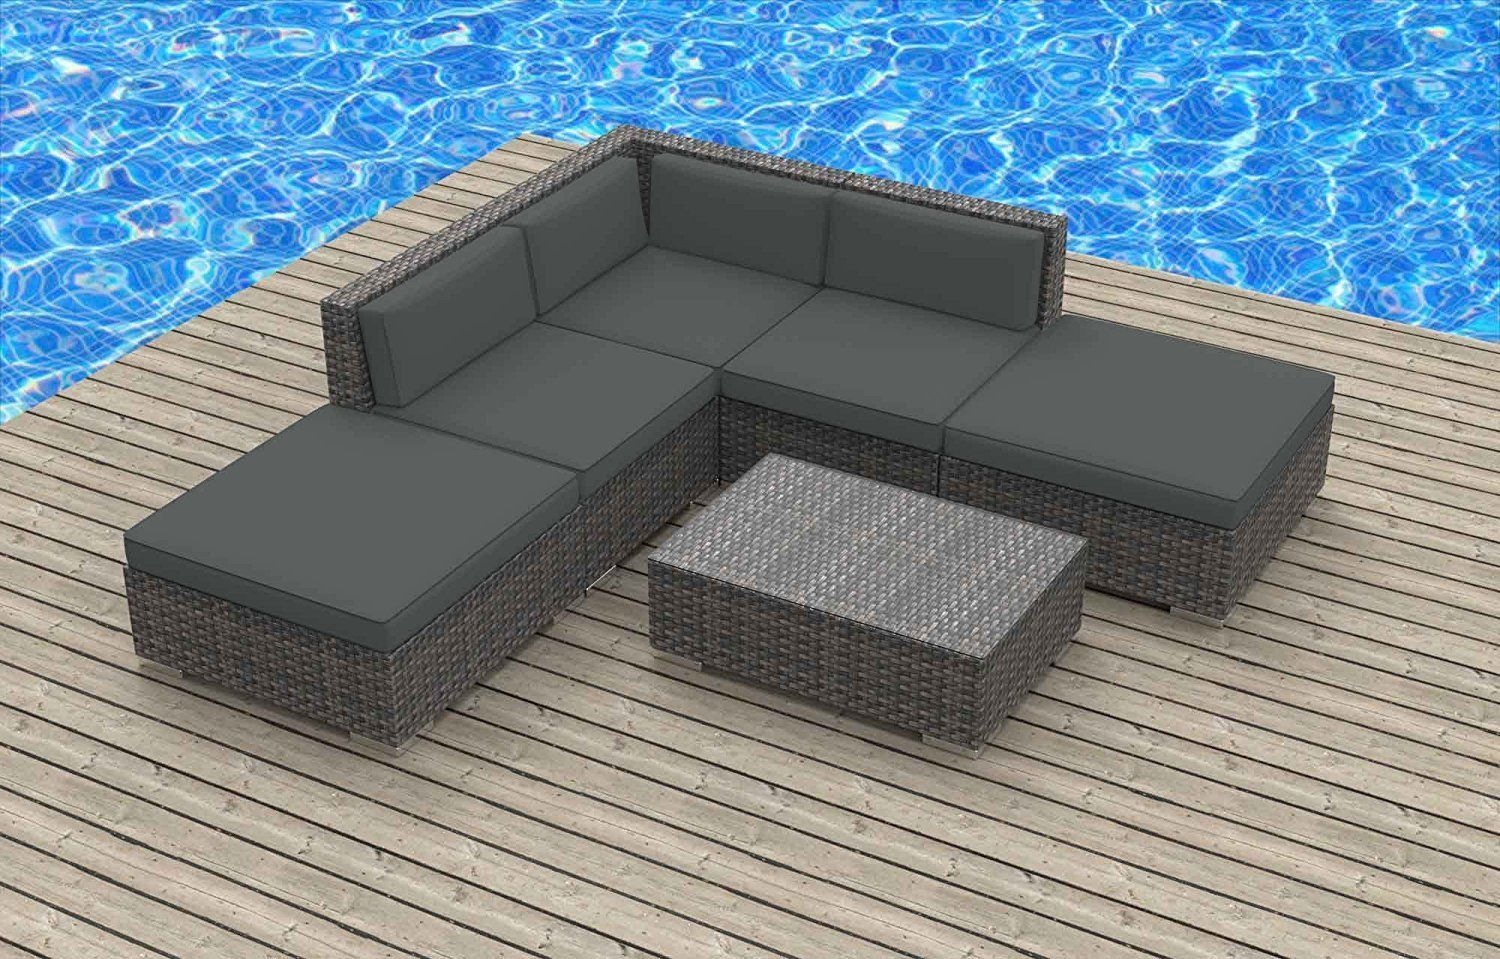 Urban furnishing bali 6pc modern outdoor wicker patio furniture modular sofa sectional set fully assembled charcoal gray more info could be found at the